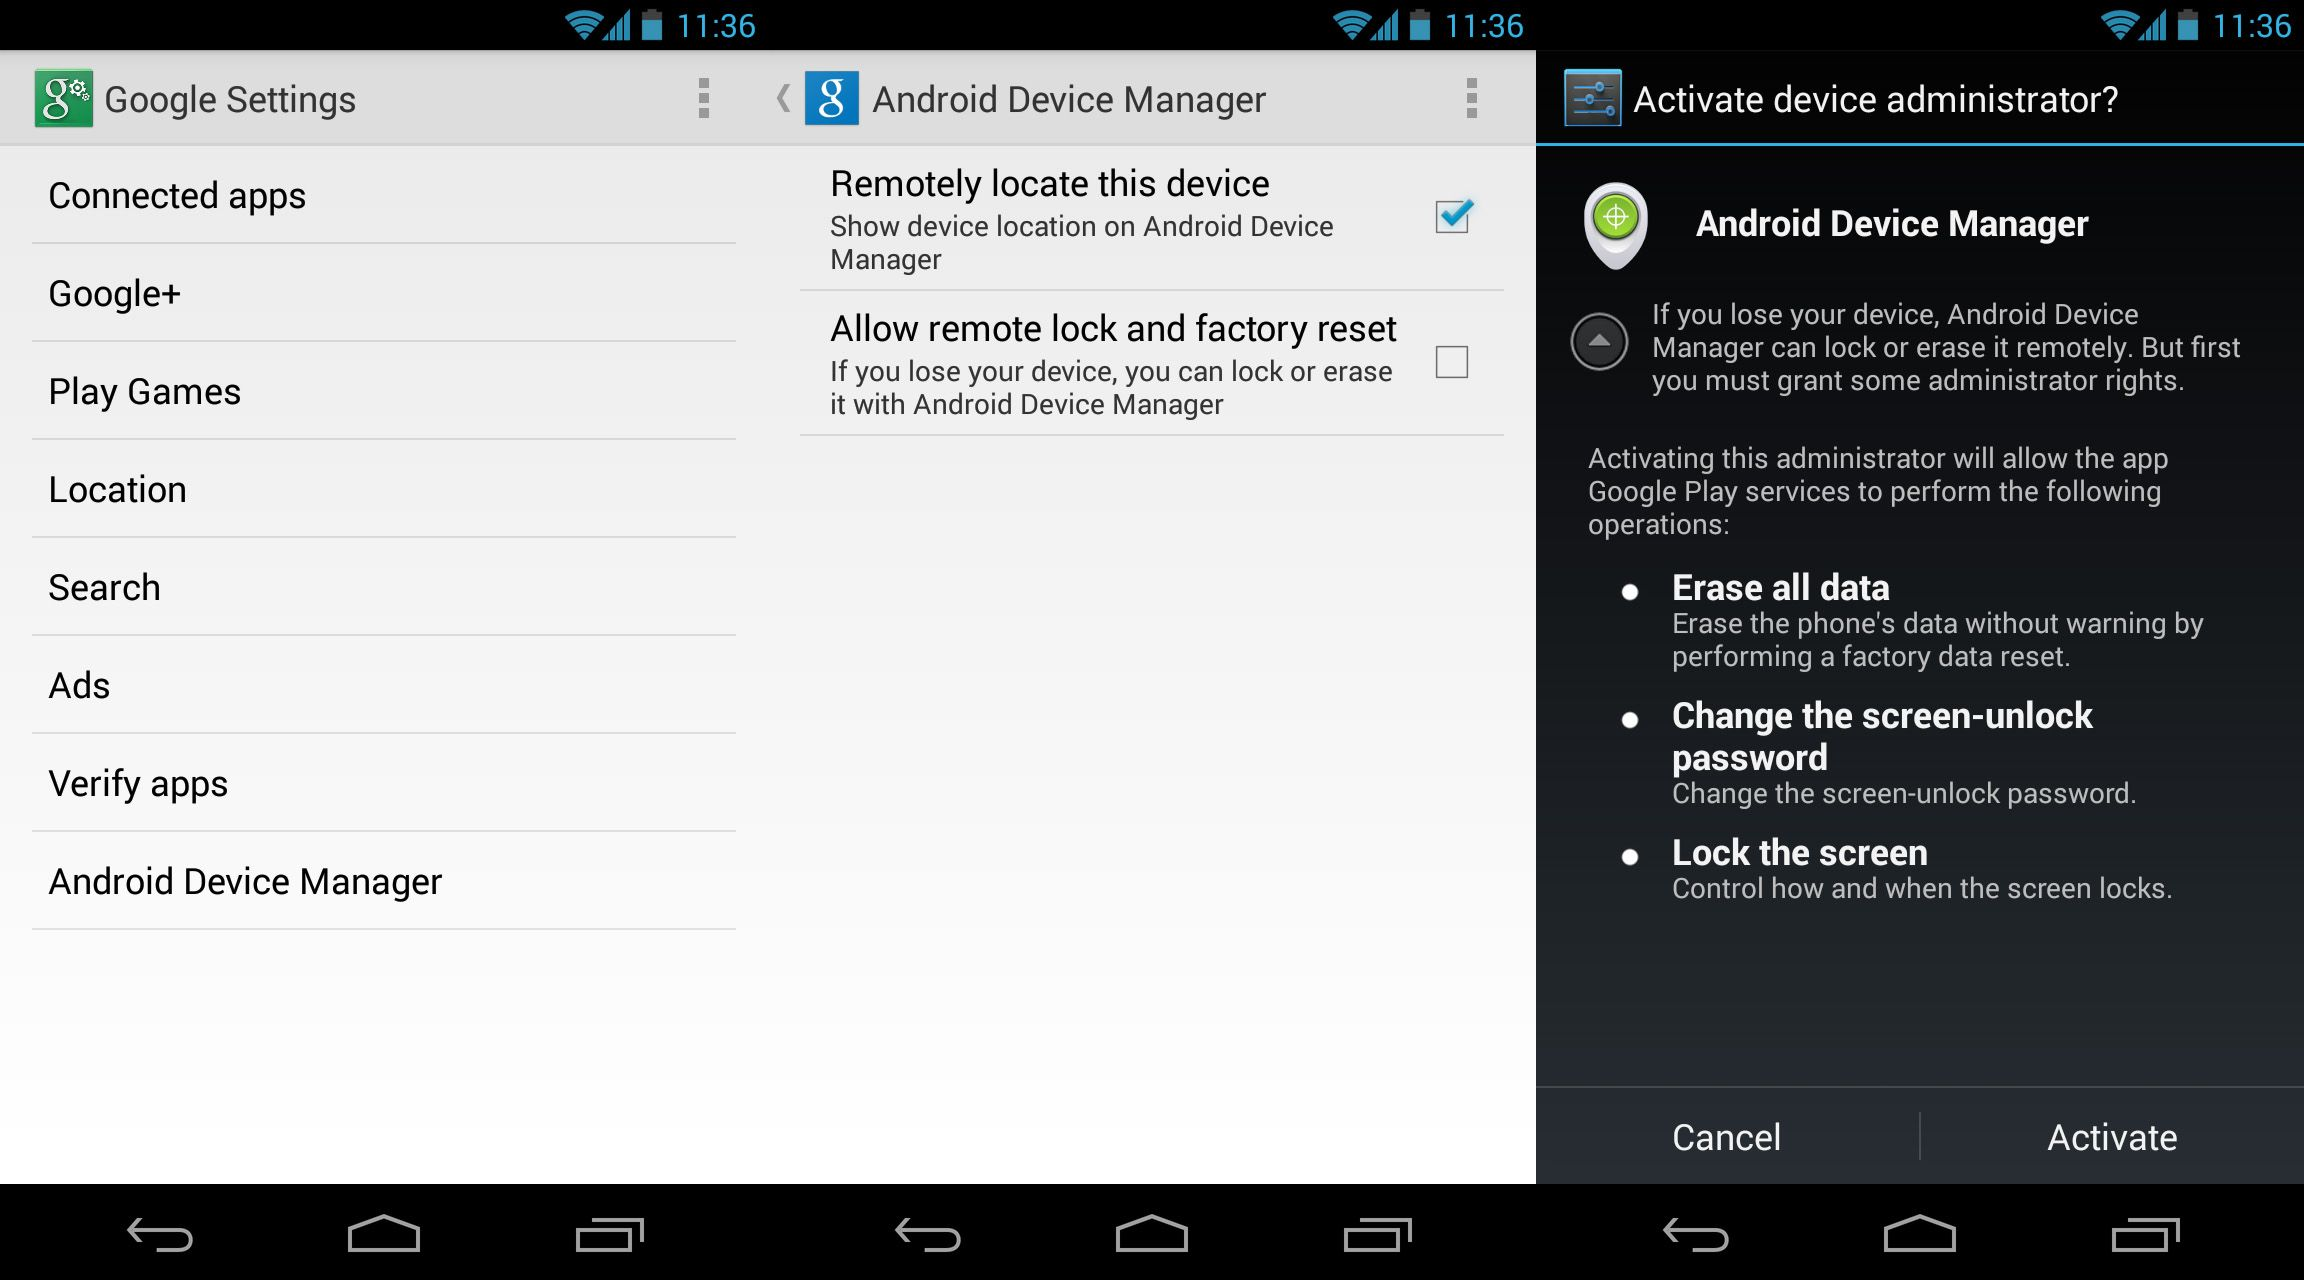 Droid Email Activate Device Administrator